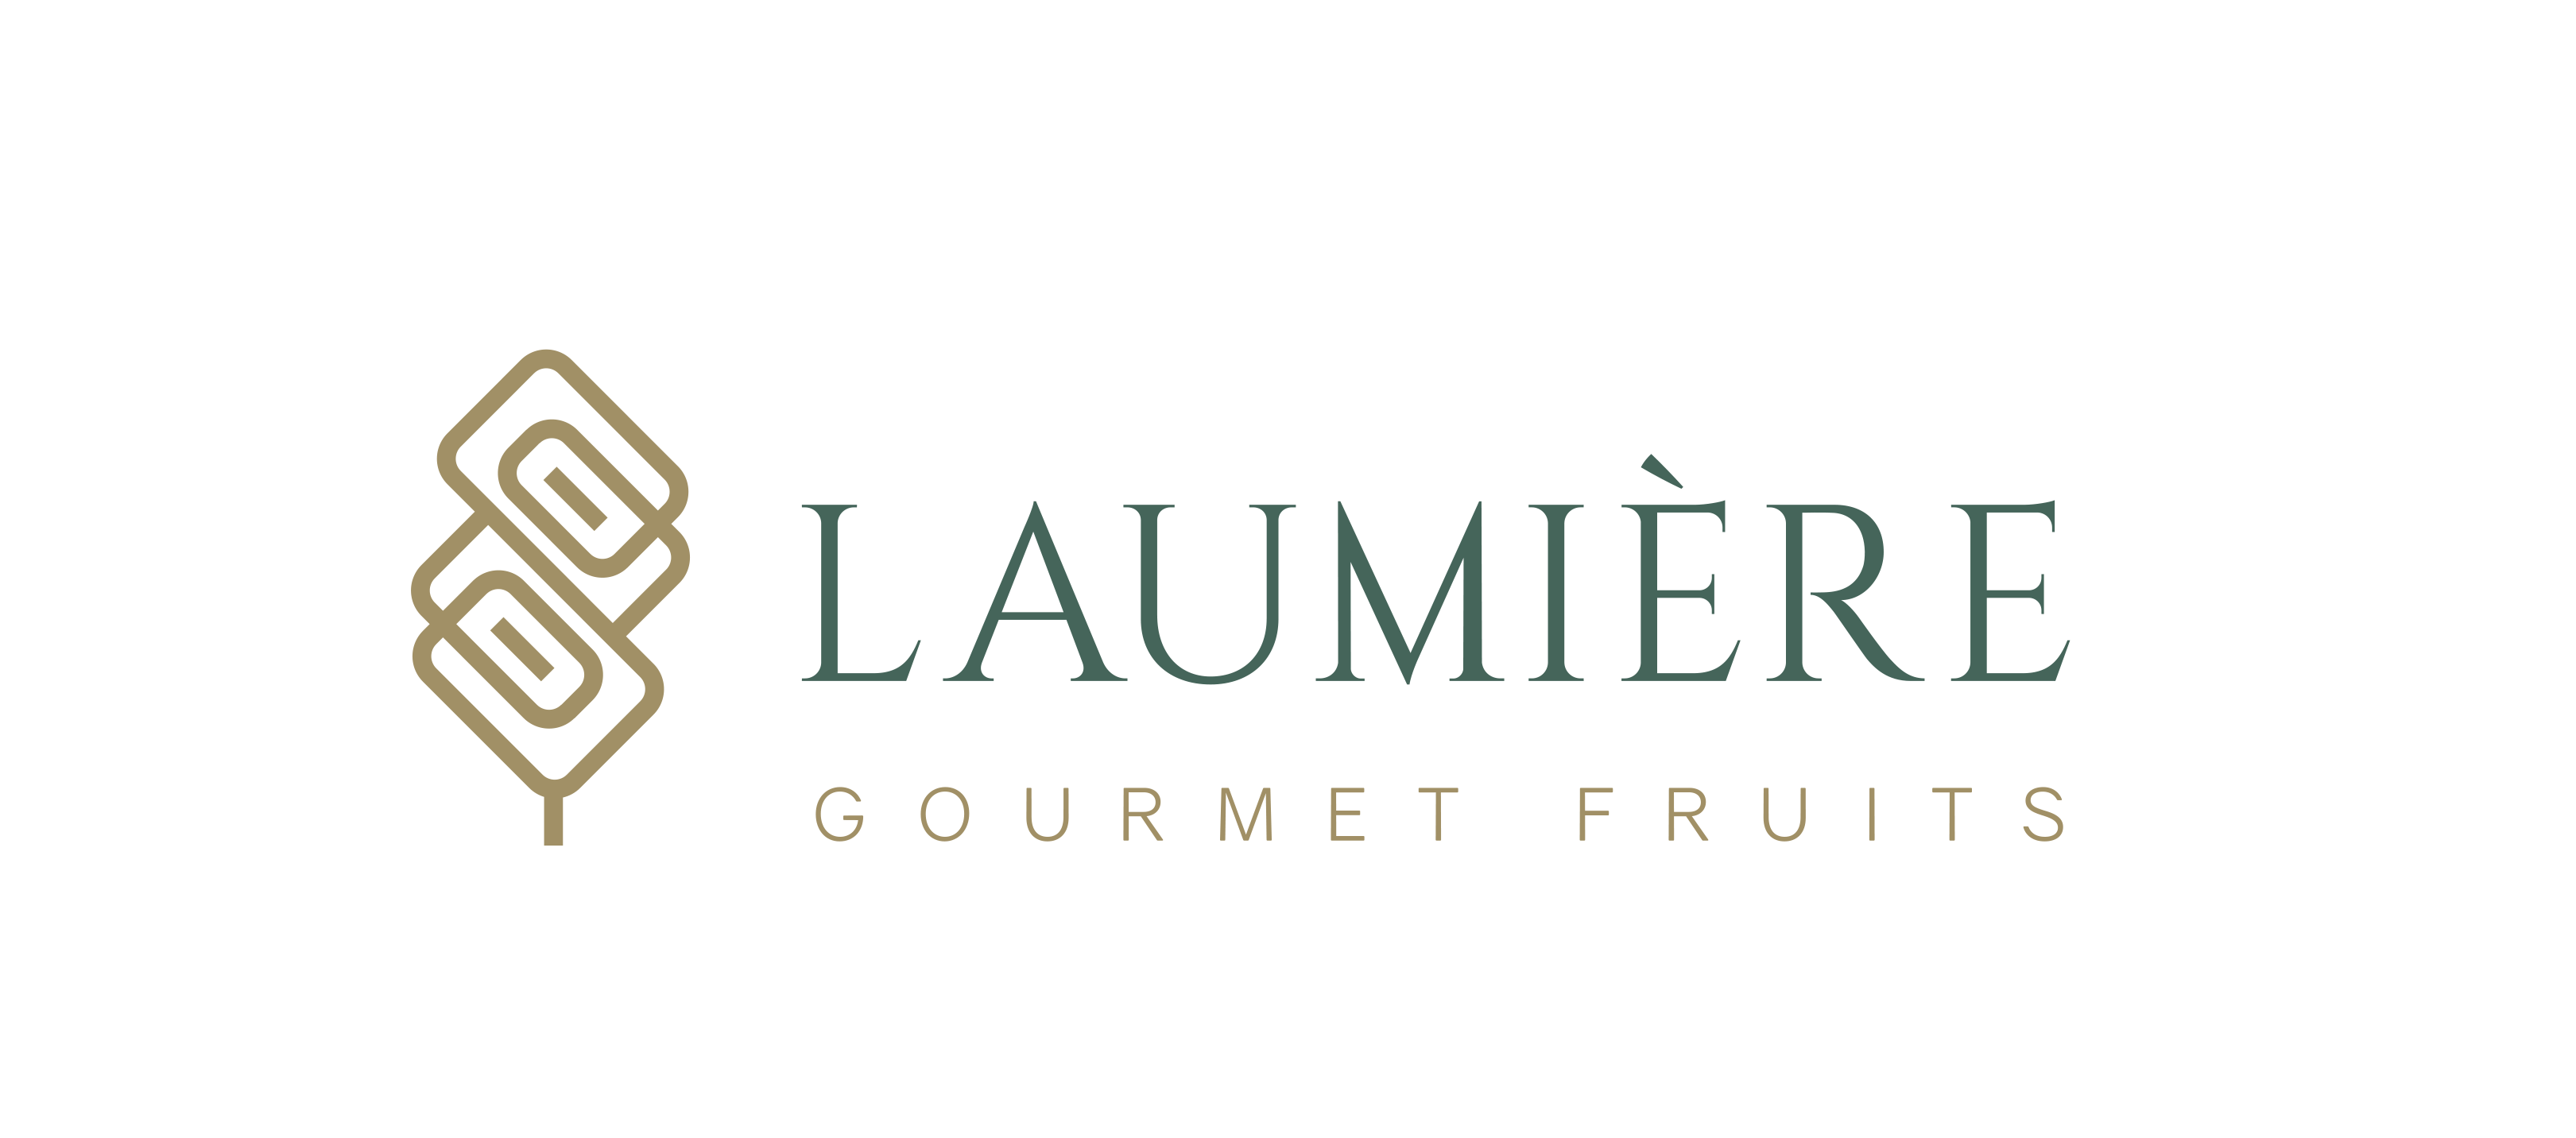 Laumiere Gourmet Fruits